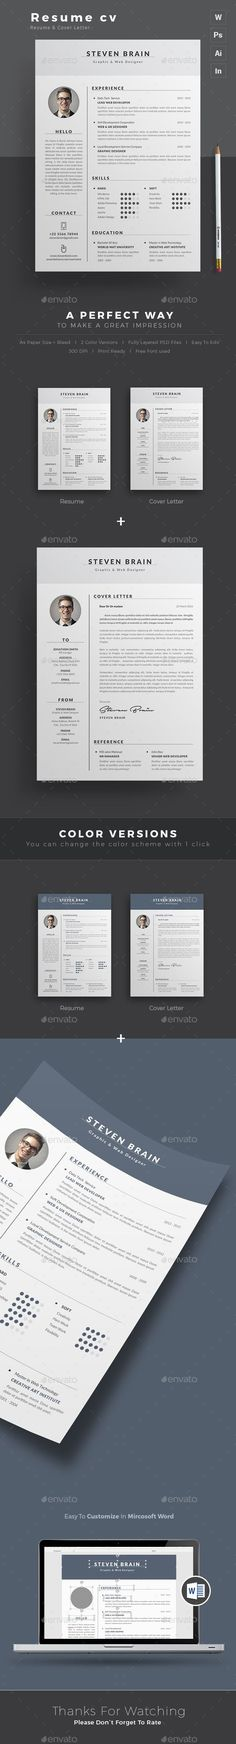 Resume / CV Template is made in Adobe Photoshop, Illustrator, Indesign format and very popular word processor, MS Word aka Microsoft Word